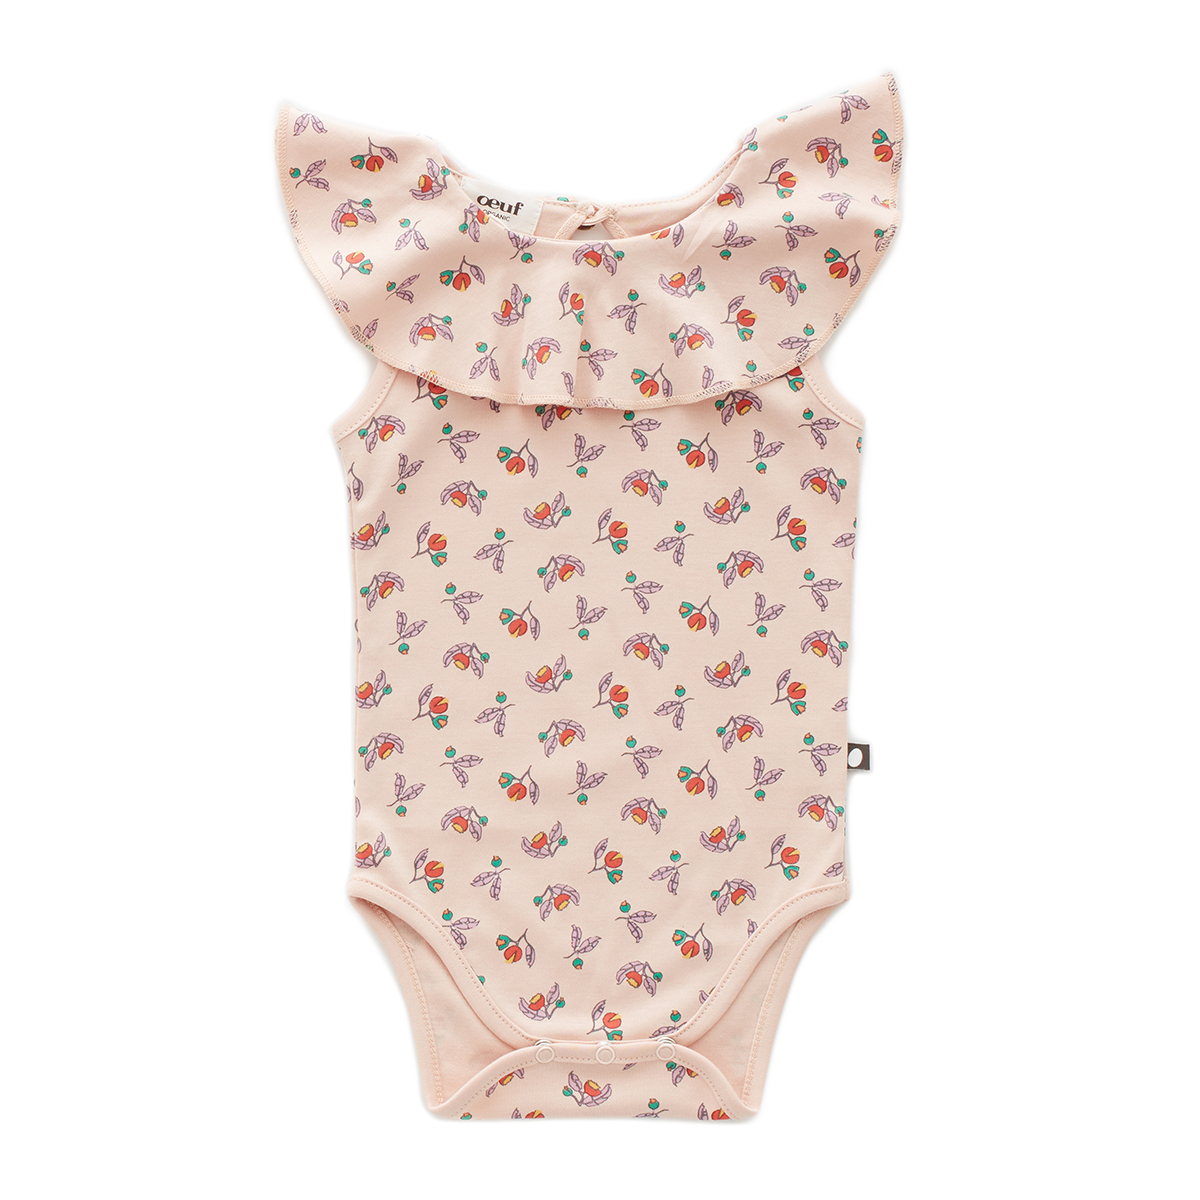 Oeuf Baby/Toddler Sleeveless Ruffle Onesie - Small Flower